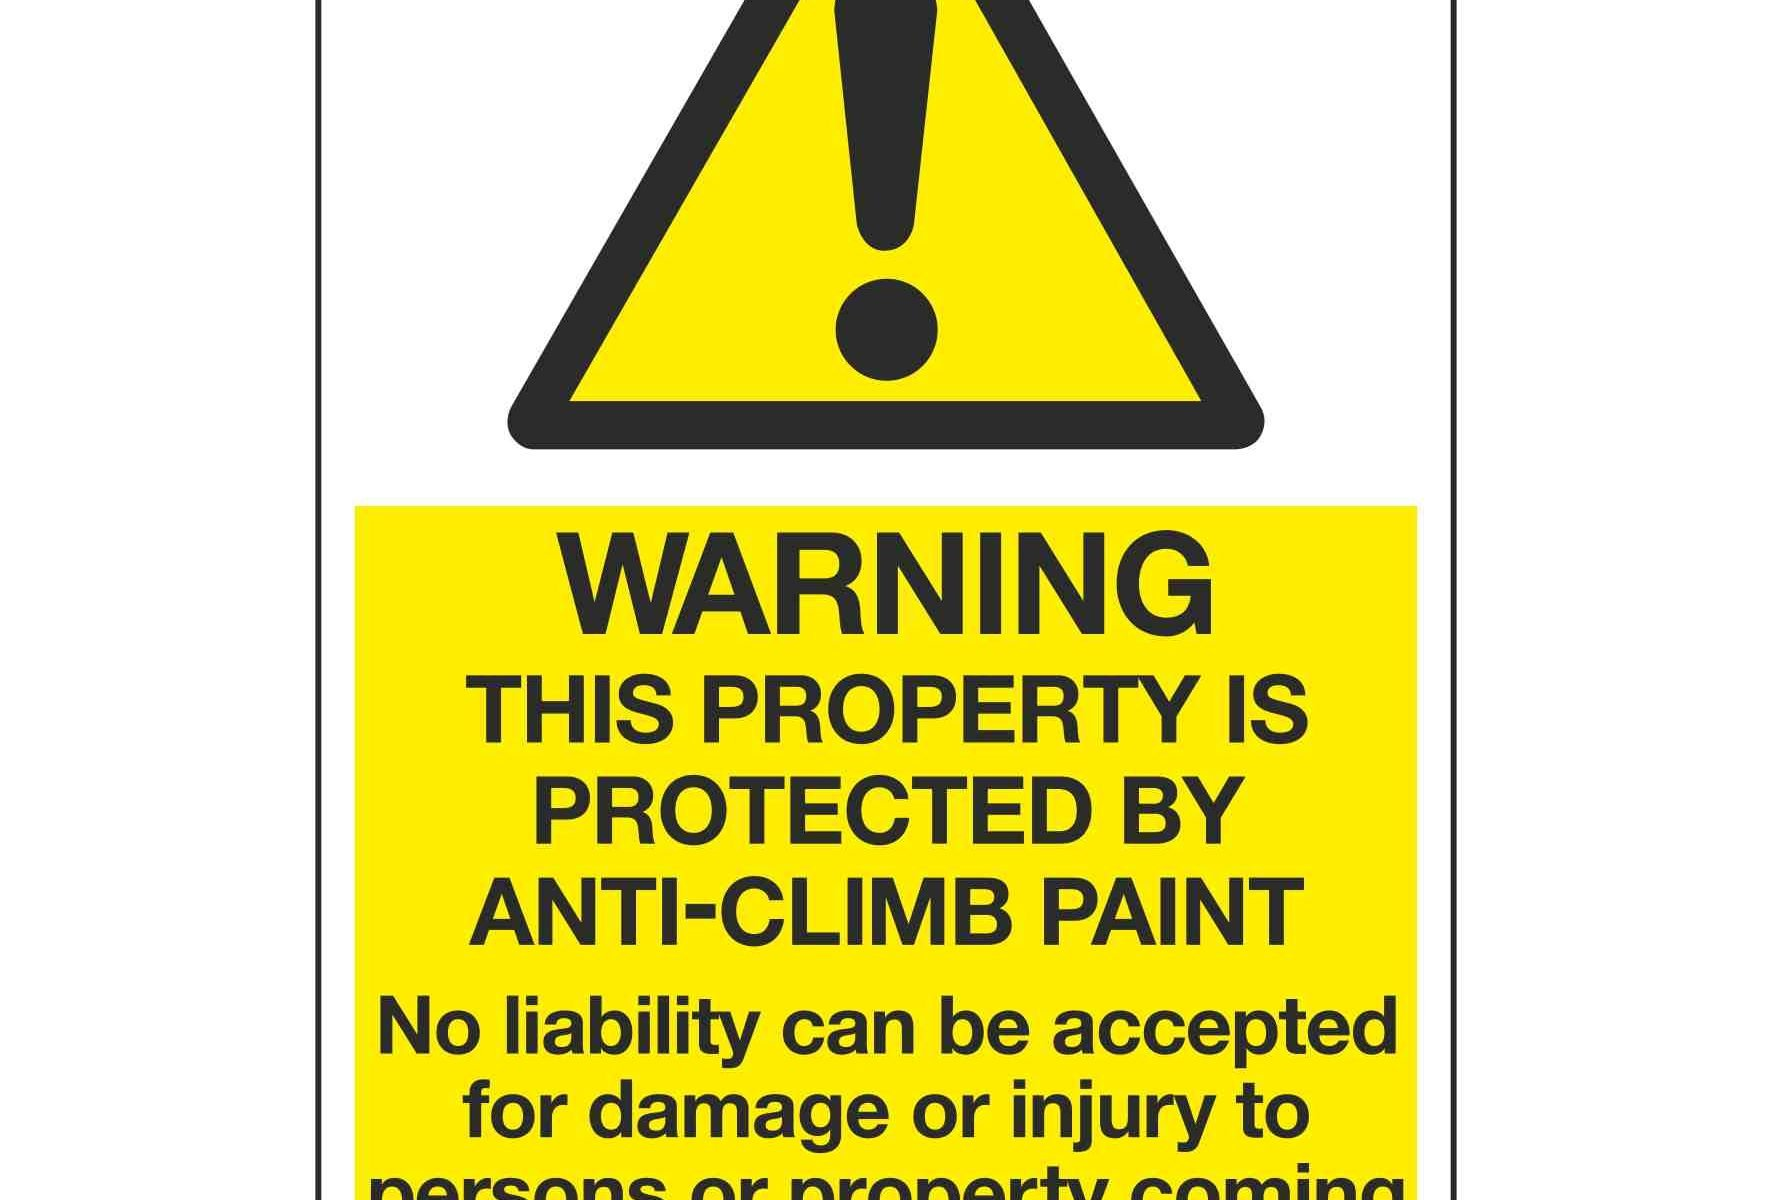 Warning This property is protected by anti-climb paint